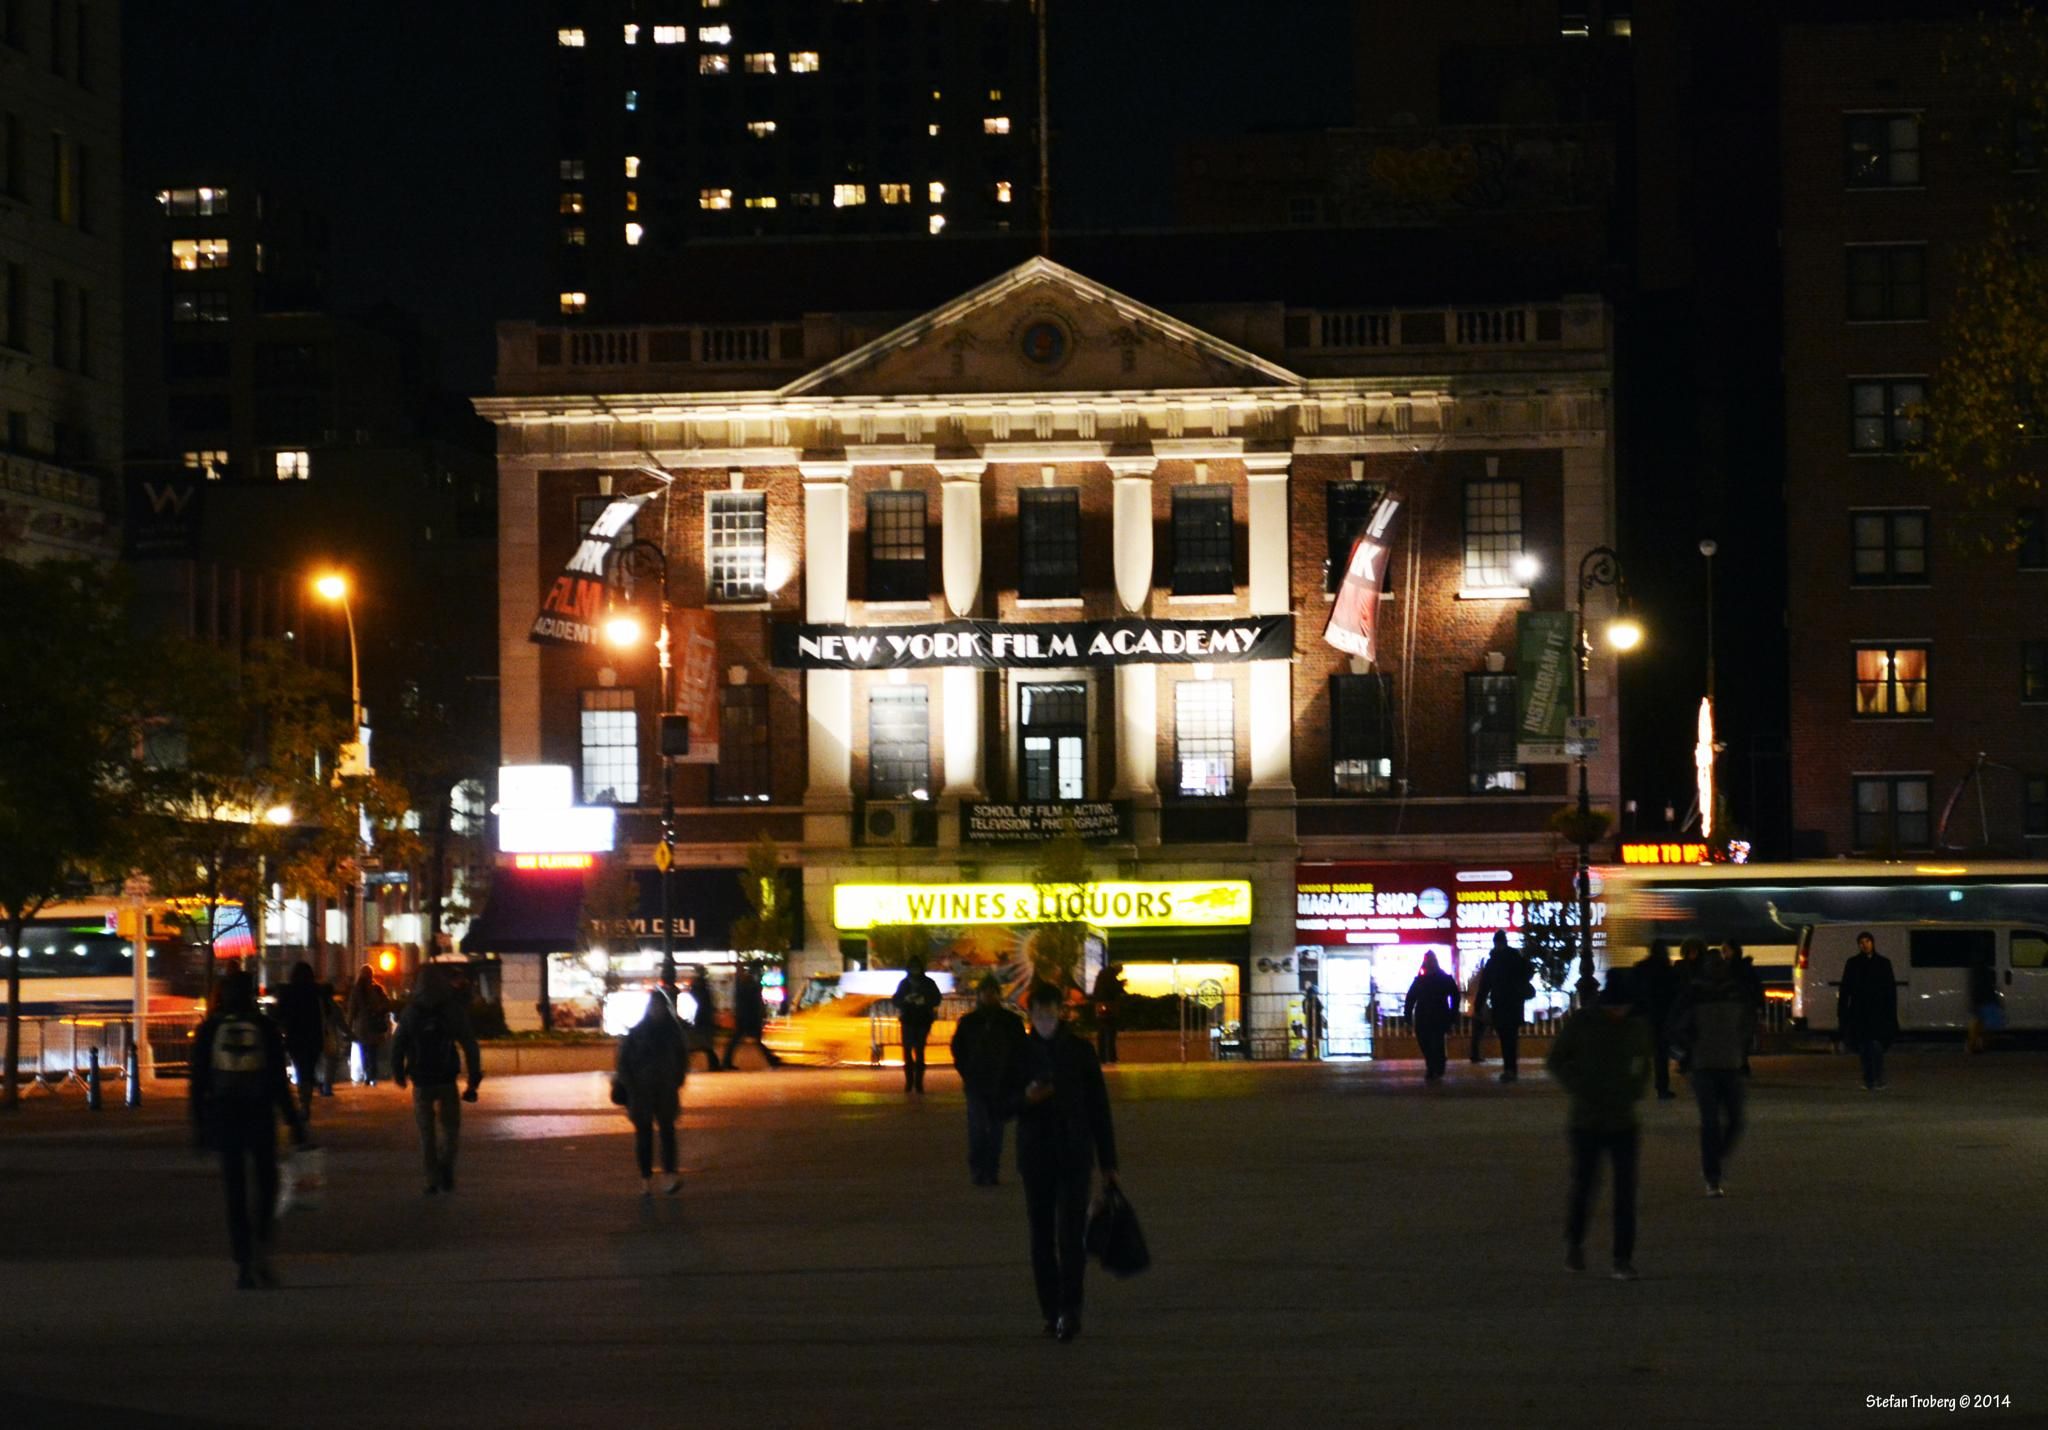 New York Film Academy by night at Union Sq in Manhattan by Stefan Troberg